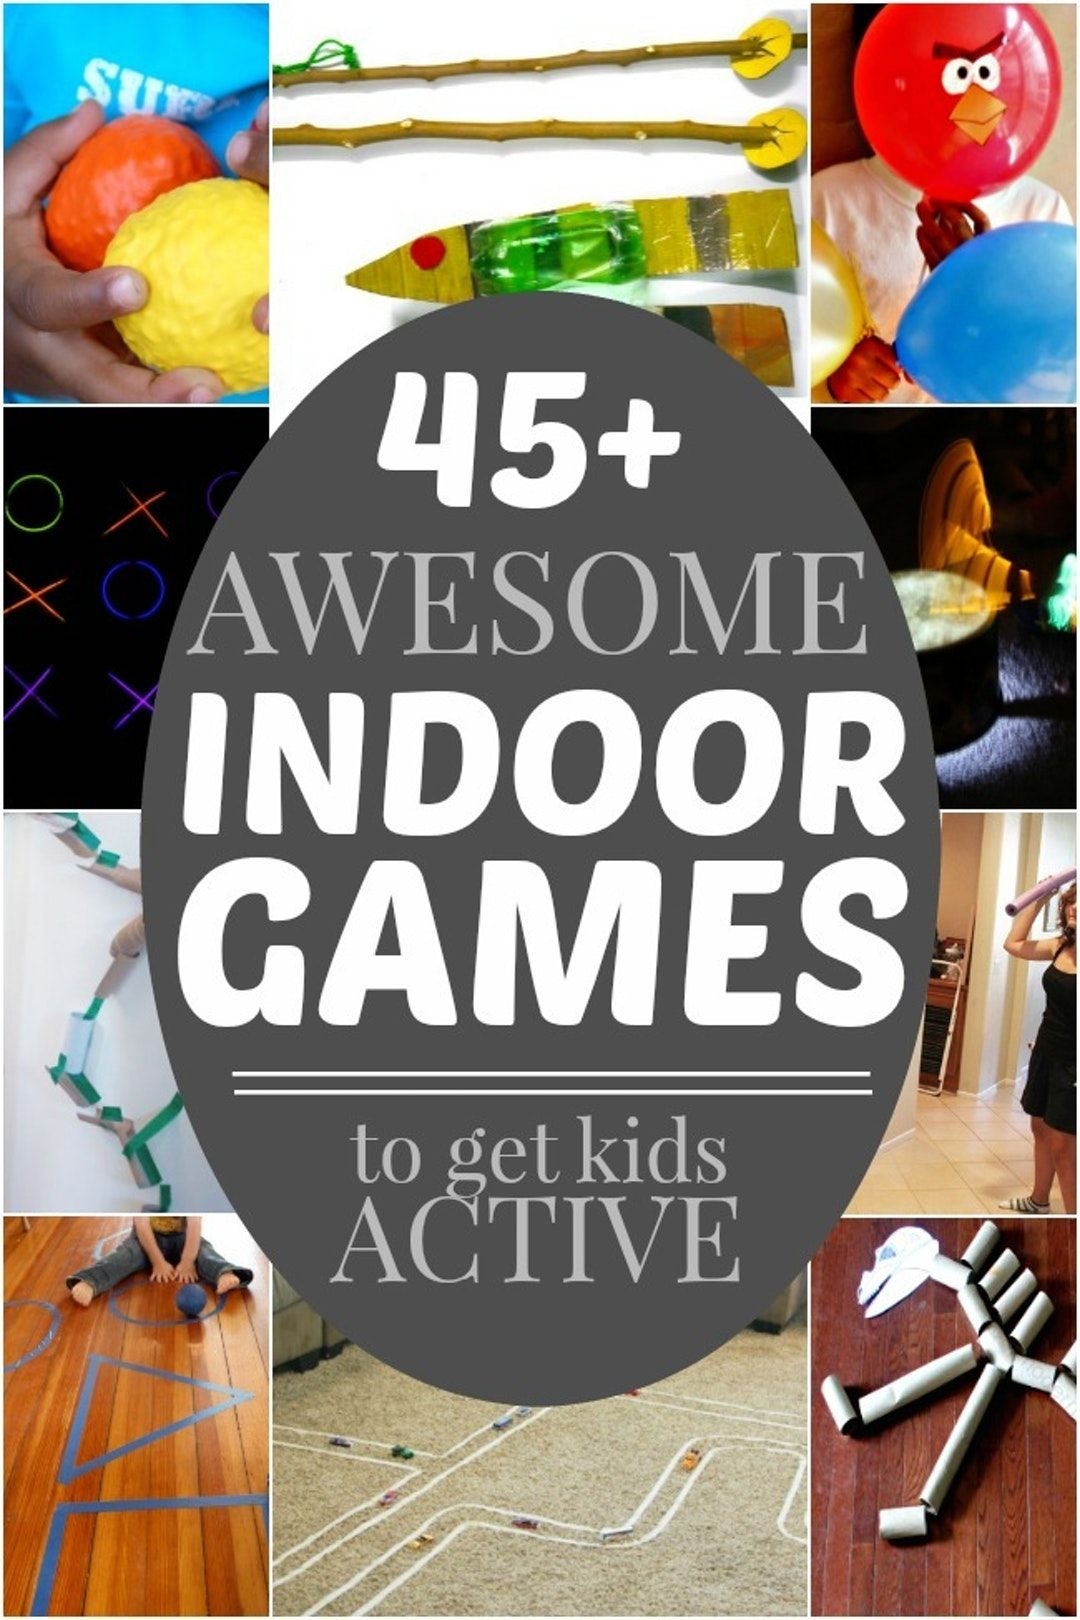 28++ Active youth group games indoor information